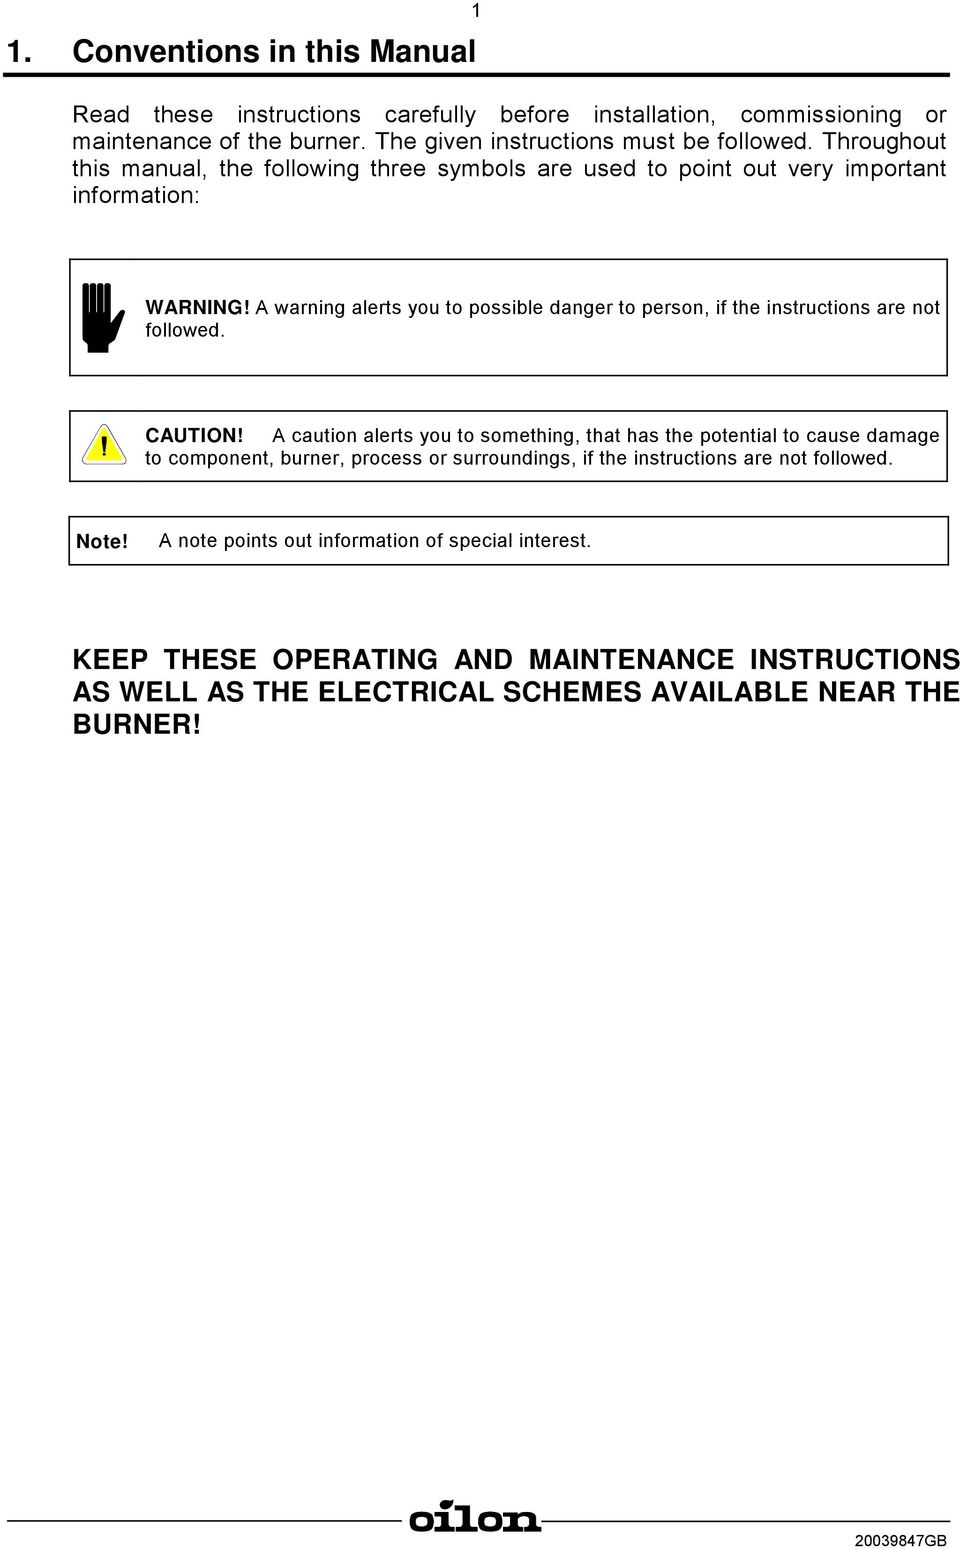 operating and maintenance instructions light oil burners pdf